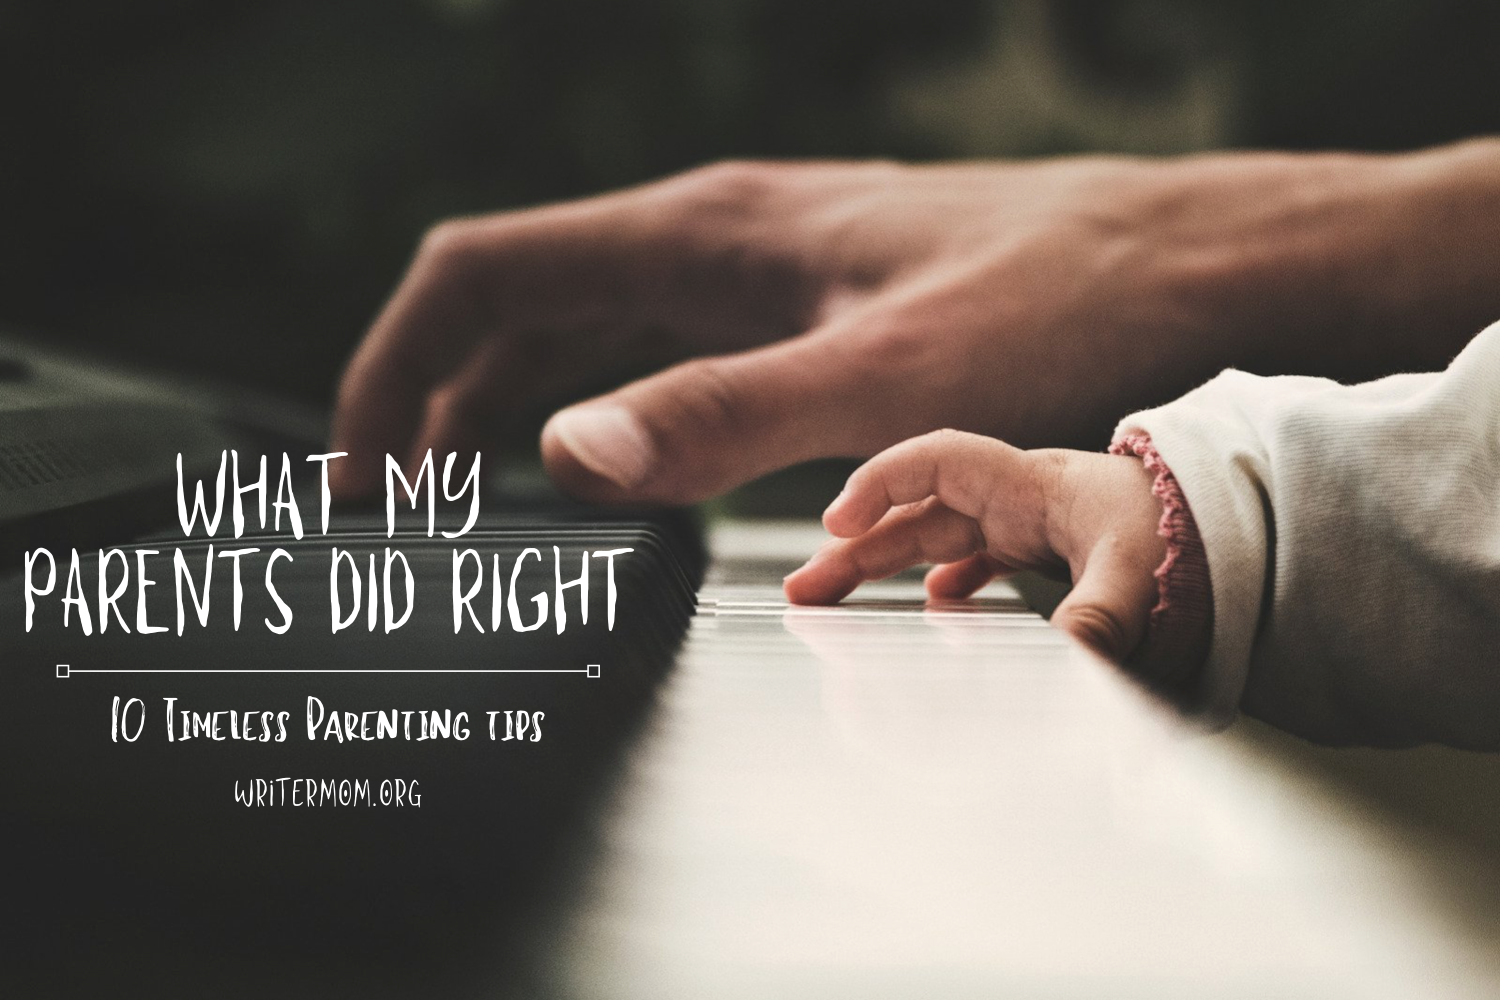 What My Parents Did Right (10 Timeless Parenting Tips)